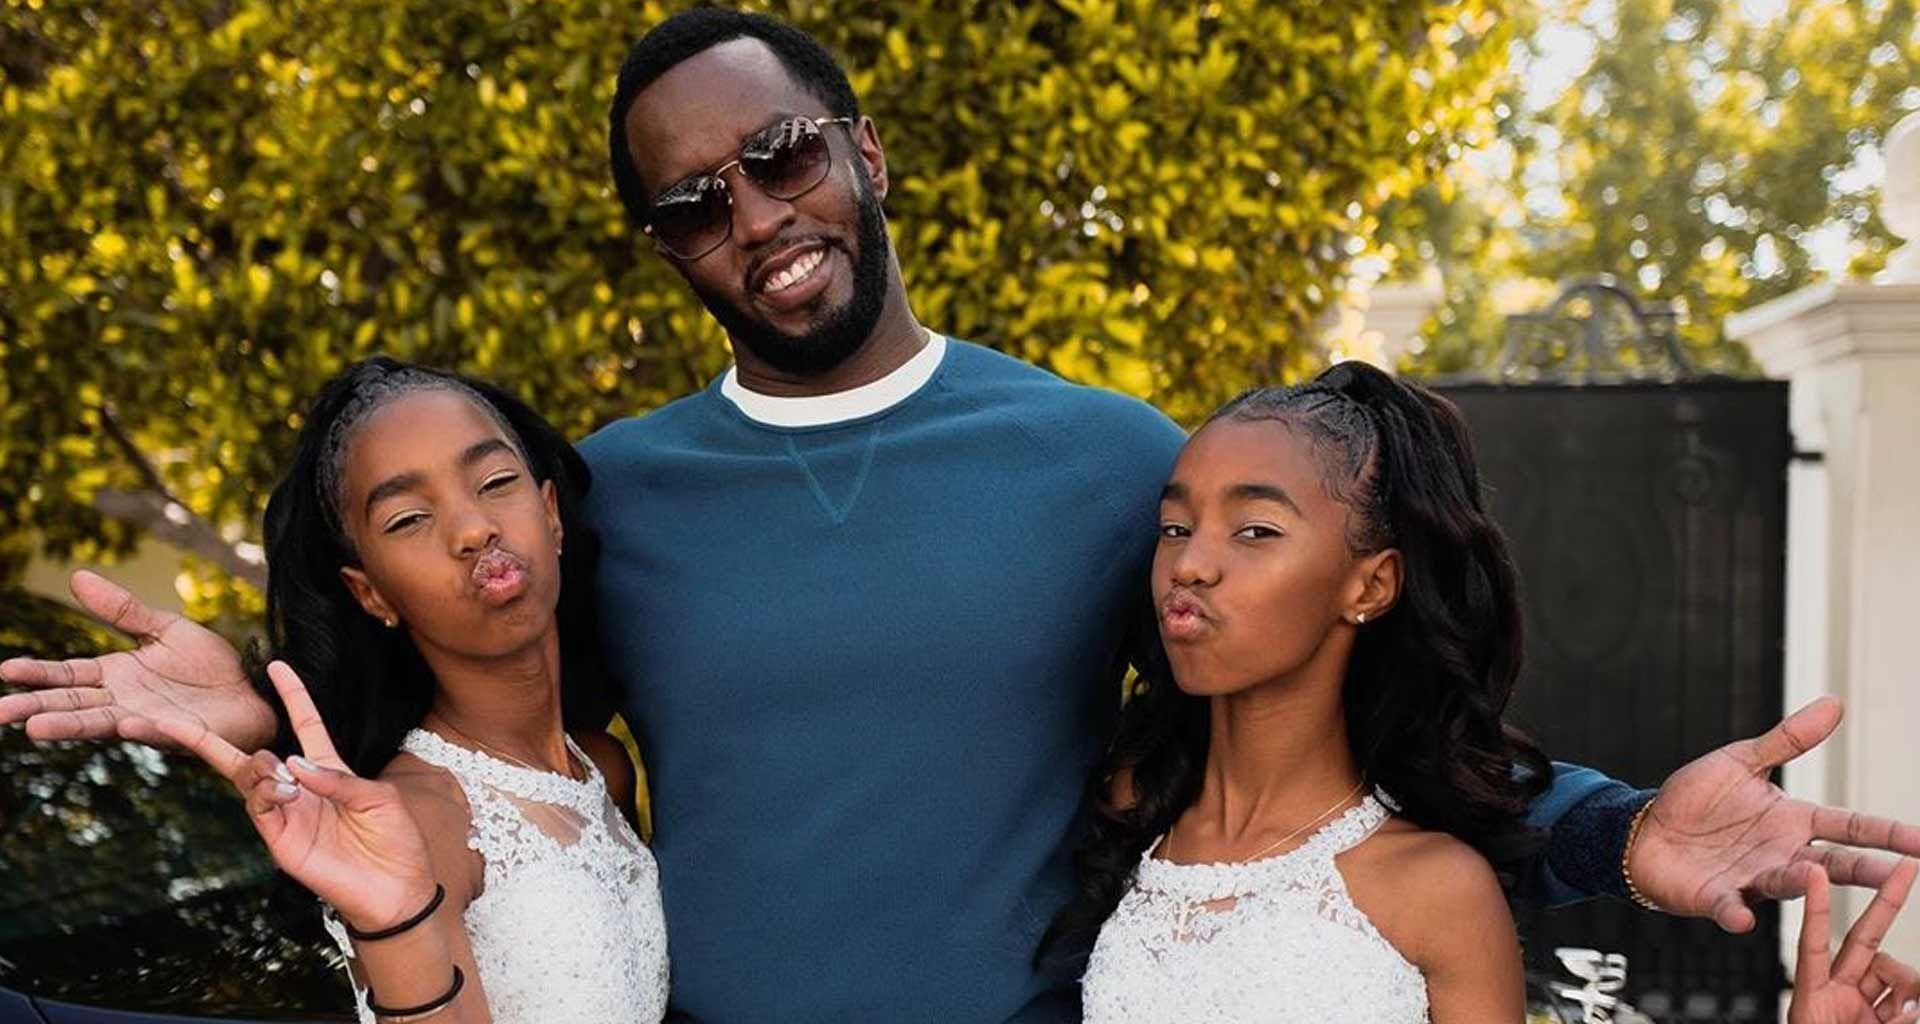 Diddy Celebrates The 13th Anniversary Of His Twin Daughters, Jessie And D'Lila - See The Video And Read His Message